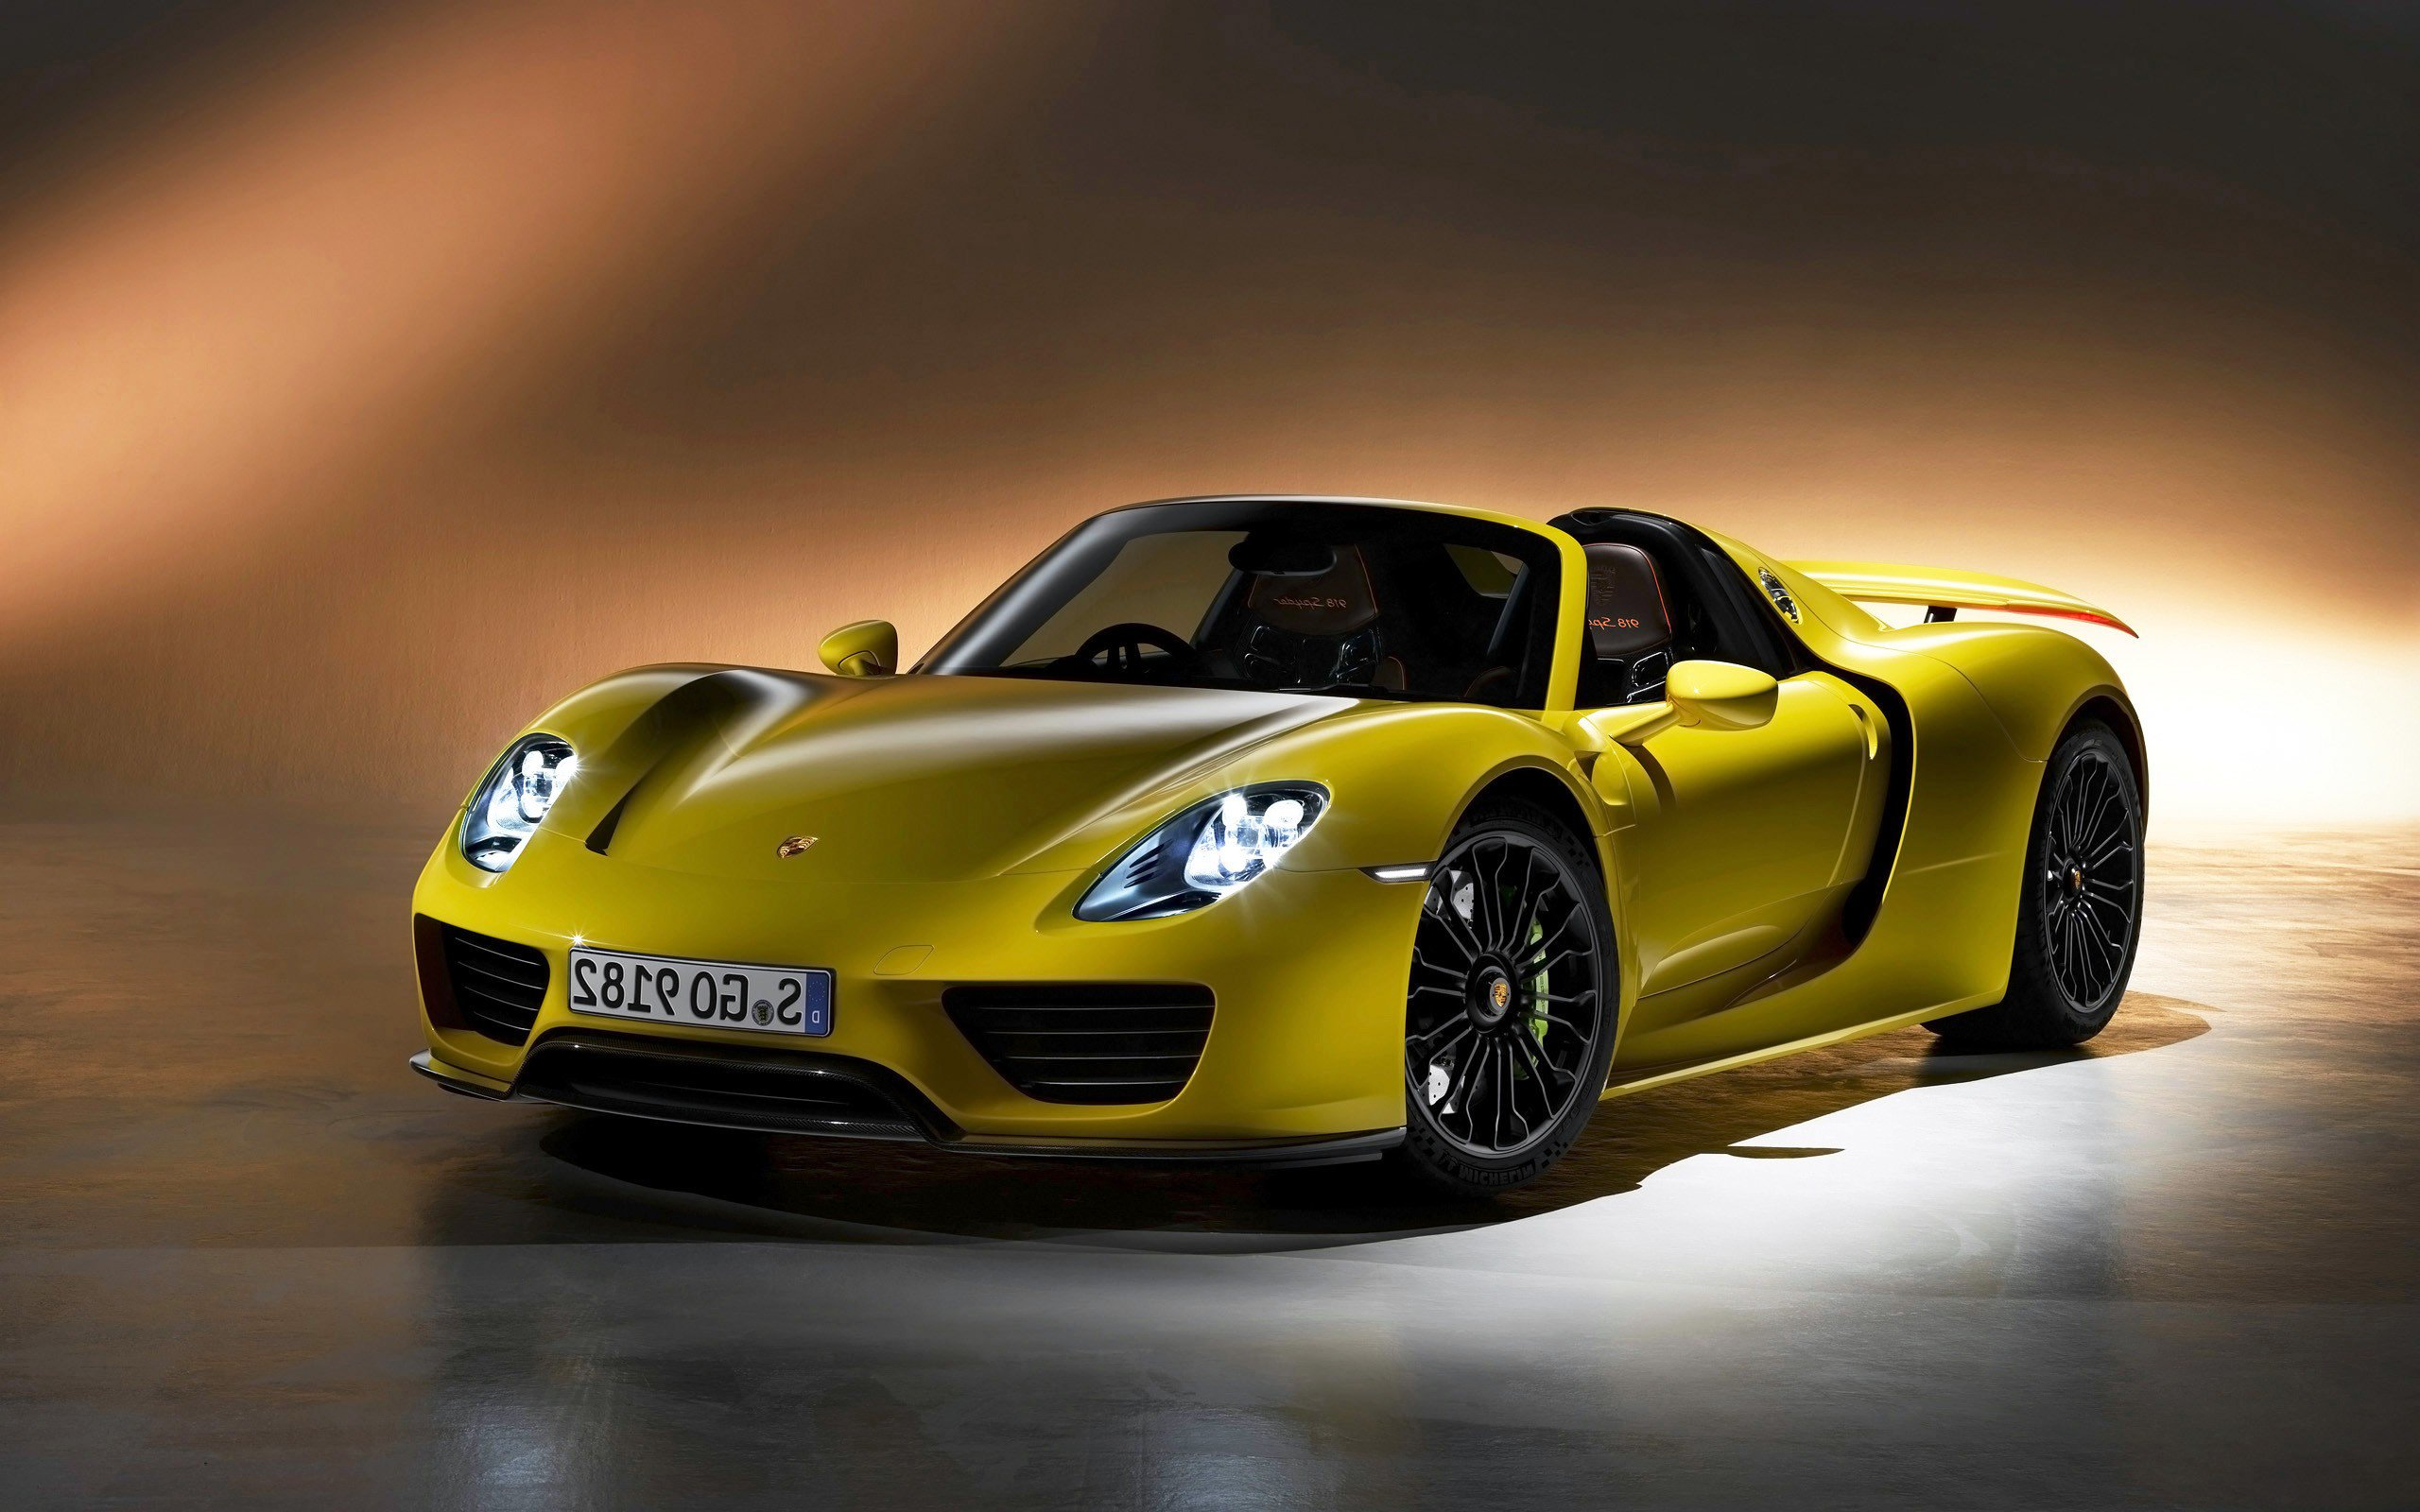 porsche 918 spyder desktop hd cars 4k wallpapers images backgrounds photos and pictures. Black Bedroom Furniture Sets. Home Design Ideas